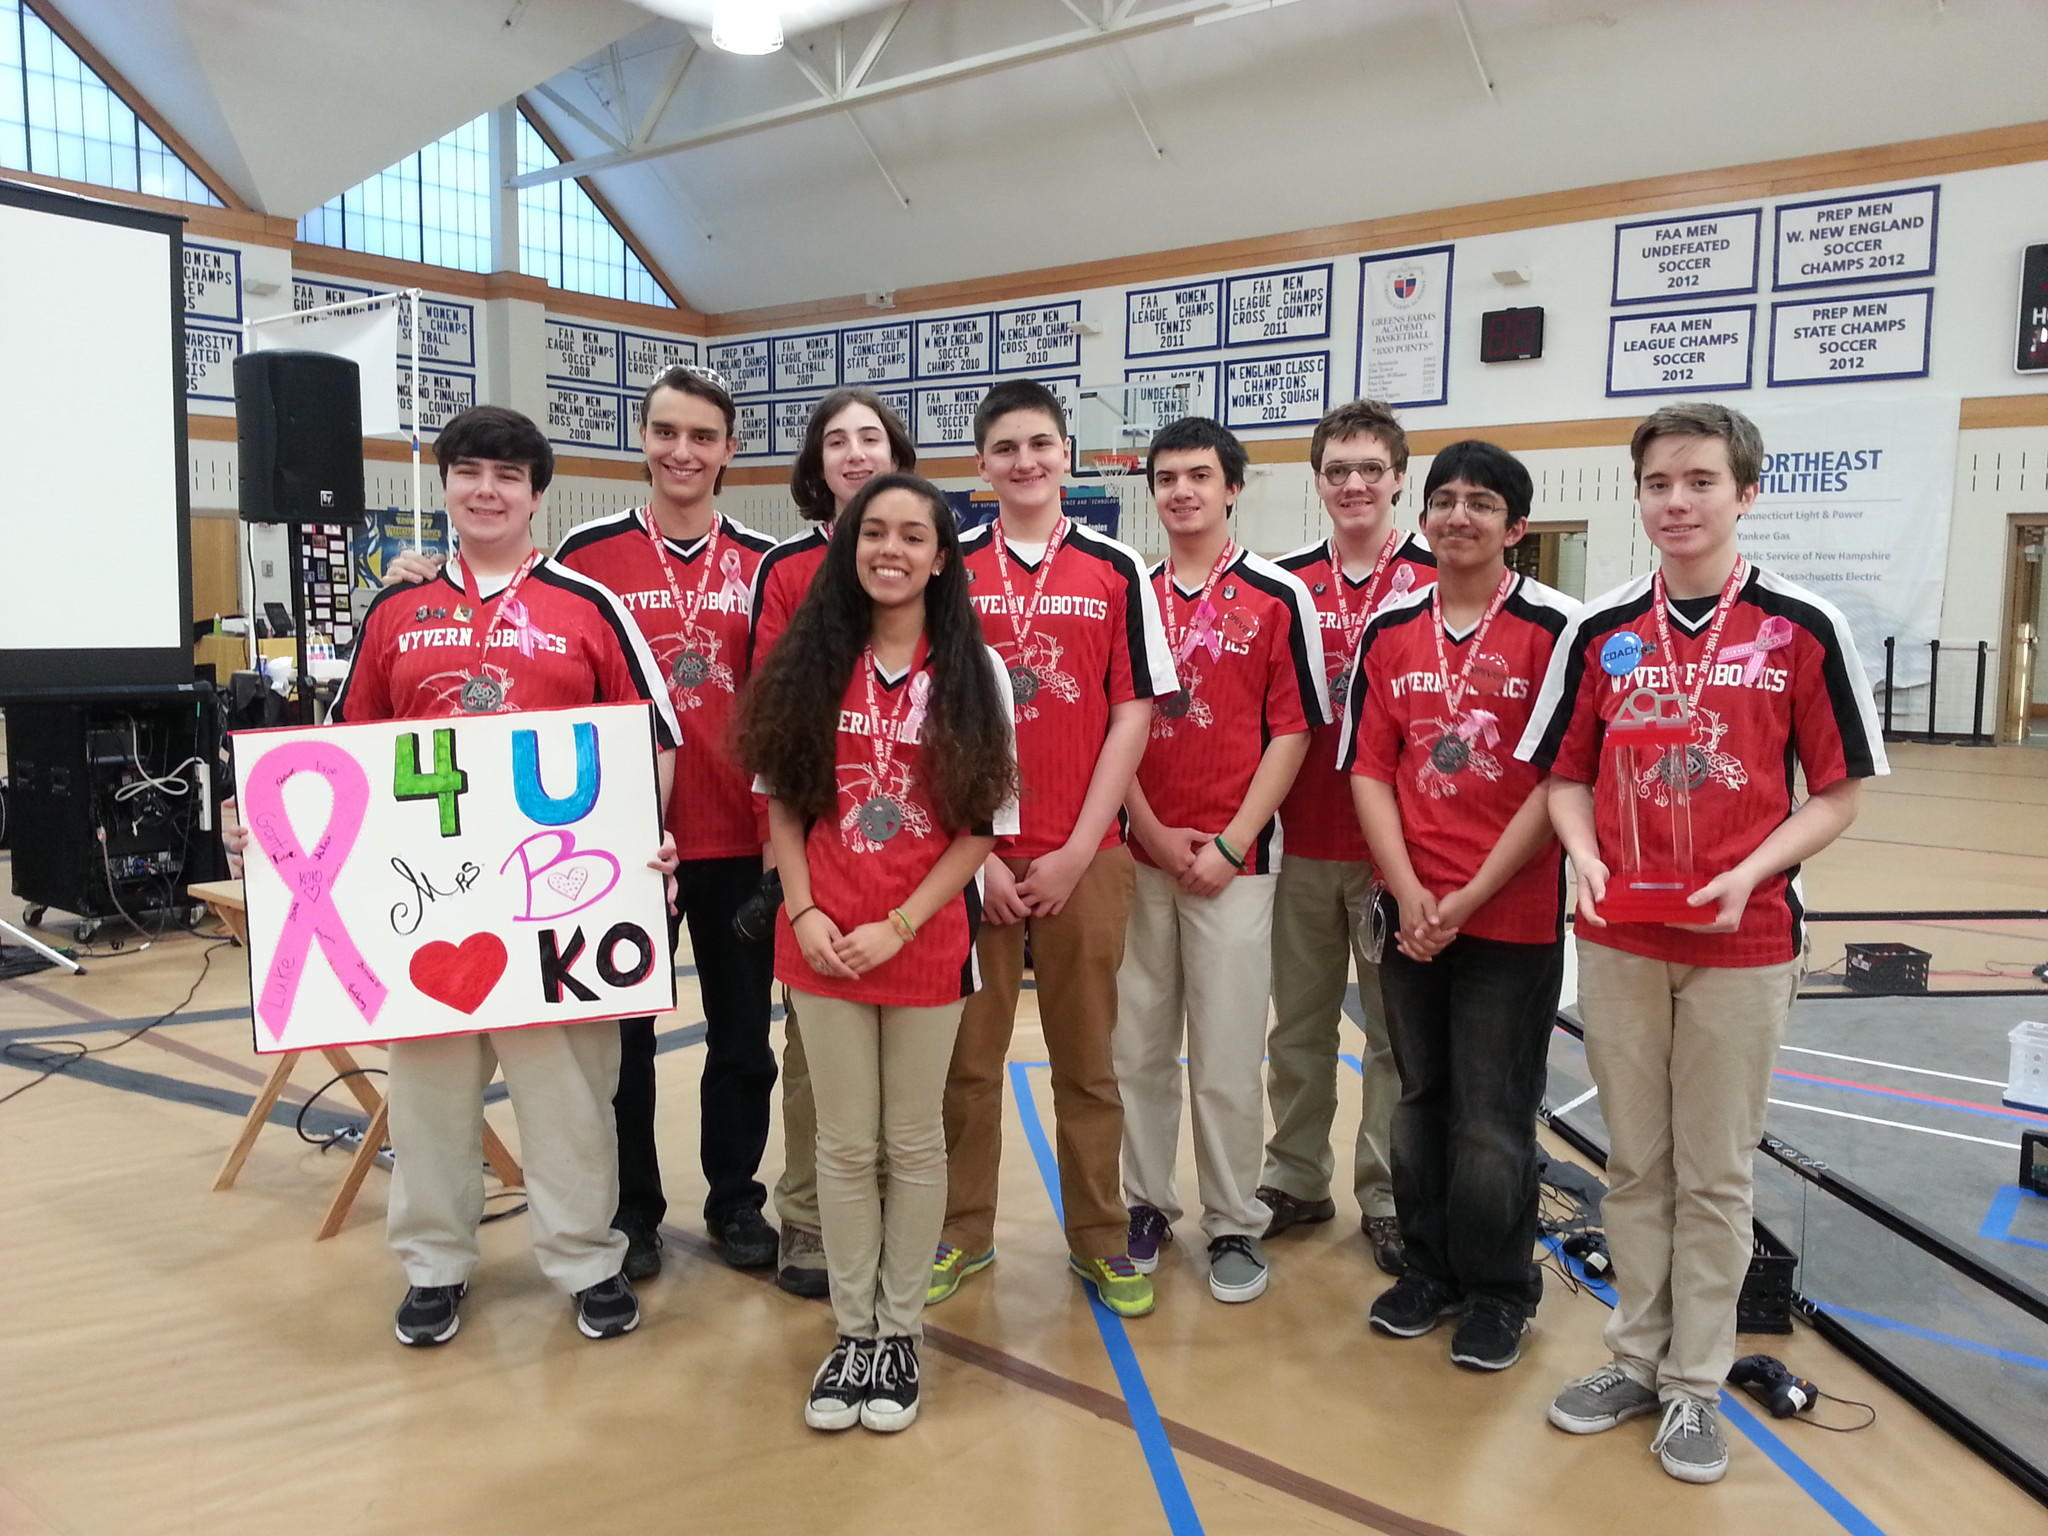 KO's Robotics team placed 1st in the CT State Championship and will compete in the Eastern Super-Regionals in April - the furthest a team has gotten since the program began 8 years ago.